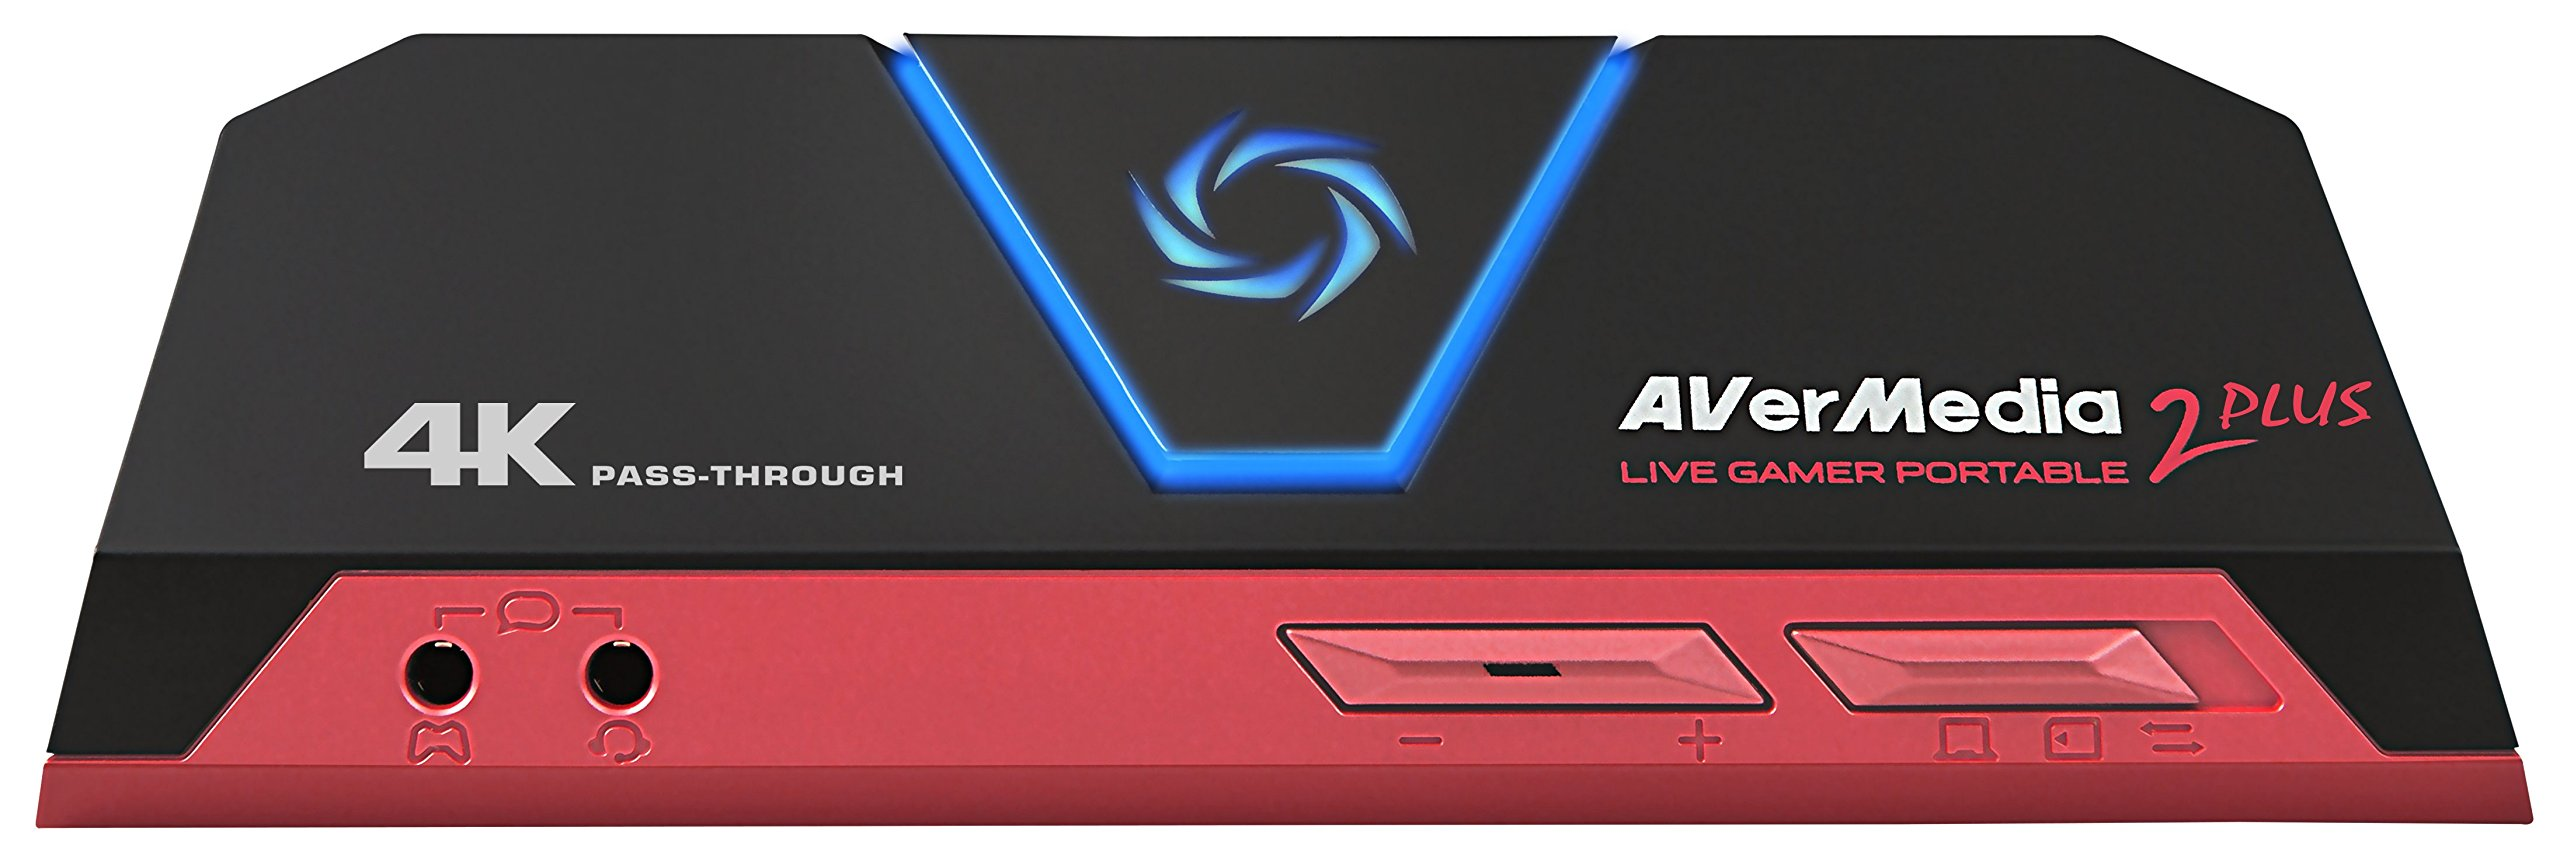 AVerMedia Live Gamer Portable 2 Plus, 4K Pass-Through, Full HD 1080p60 USB Game Capture, Ultra Low Latency, Record, Stream, Plug & Play, Party Chat for XBOX, PlayStation, Nintendo Switch (GC513)